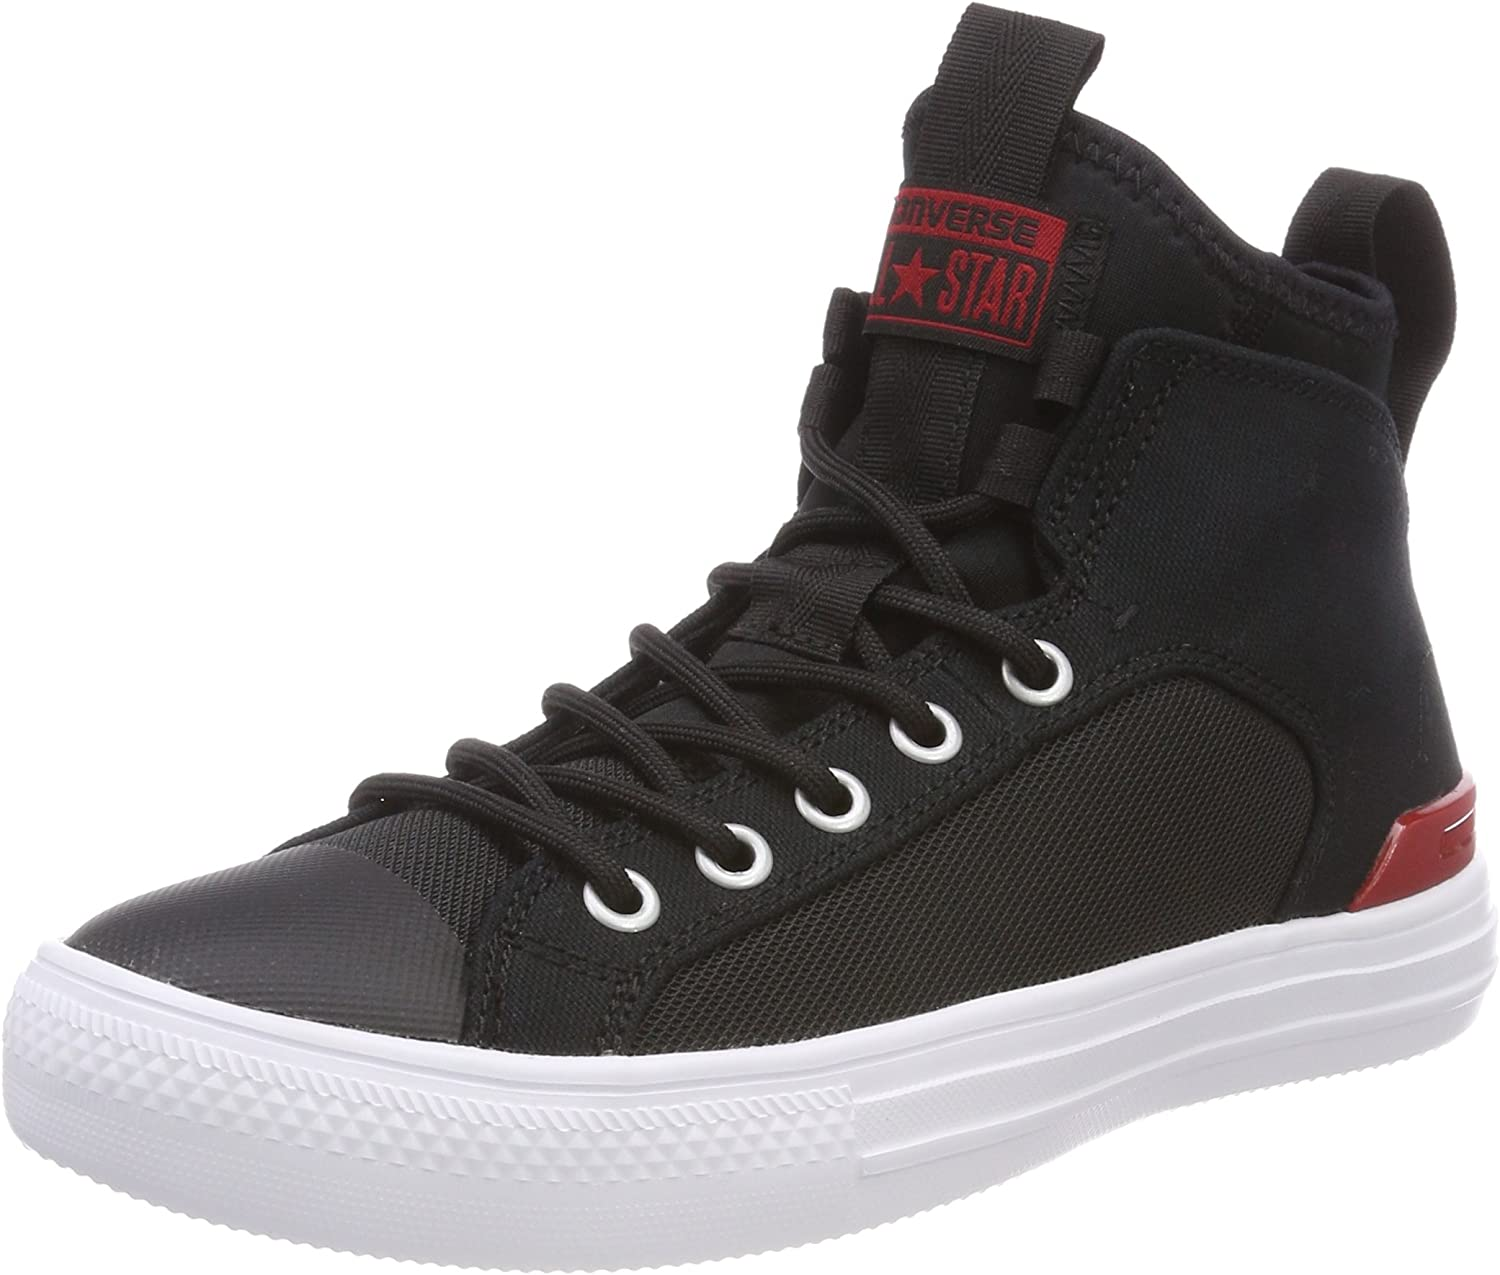 Converse Unisex Adults' CTAS Ultra Mid Black Gym Red White Hi-Top Trainers